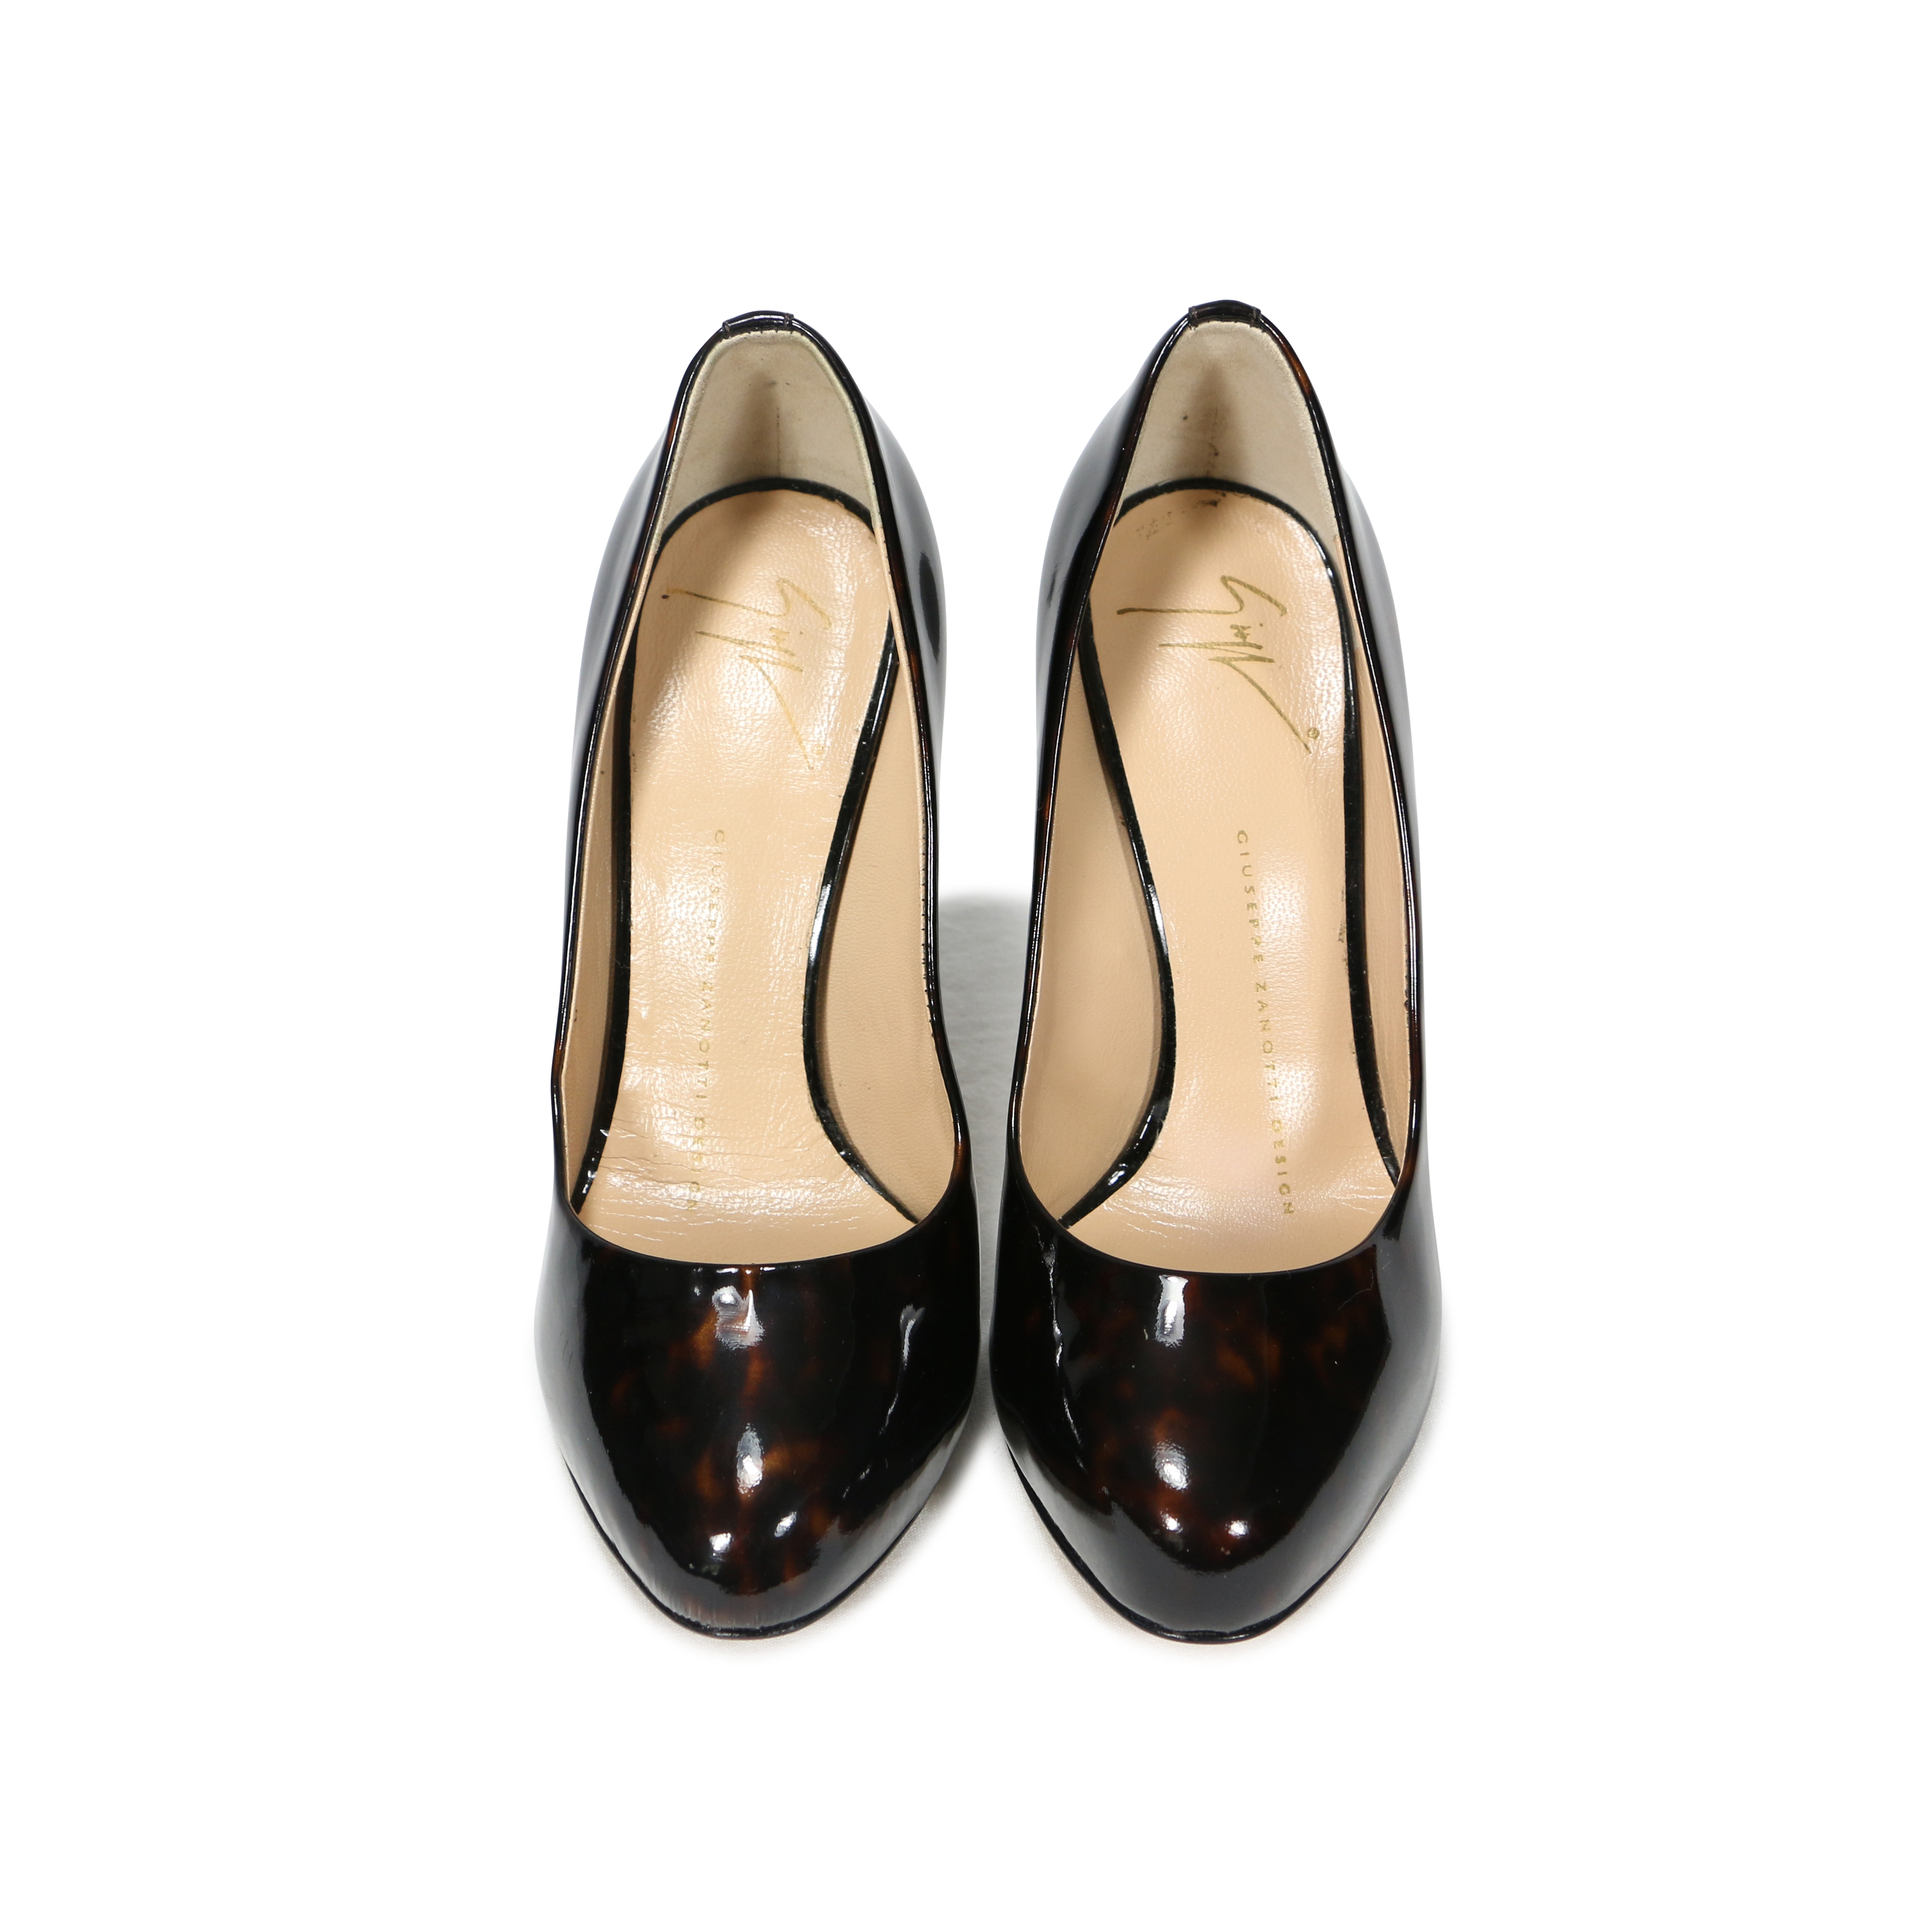 4e8c1994f8b4f Authentic Second Hand Giuseppe Zanotti Tortoise Patent Pumps  (PSS-255-00009) - THE FIFTH COLLECTION